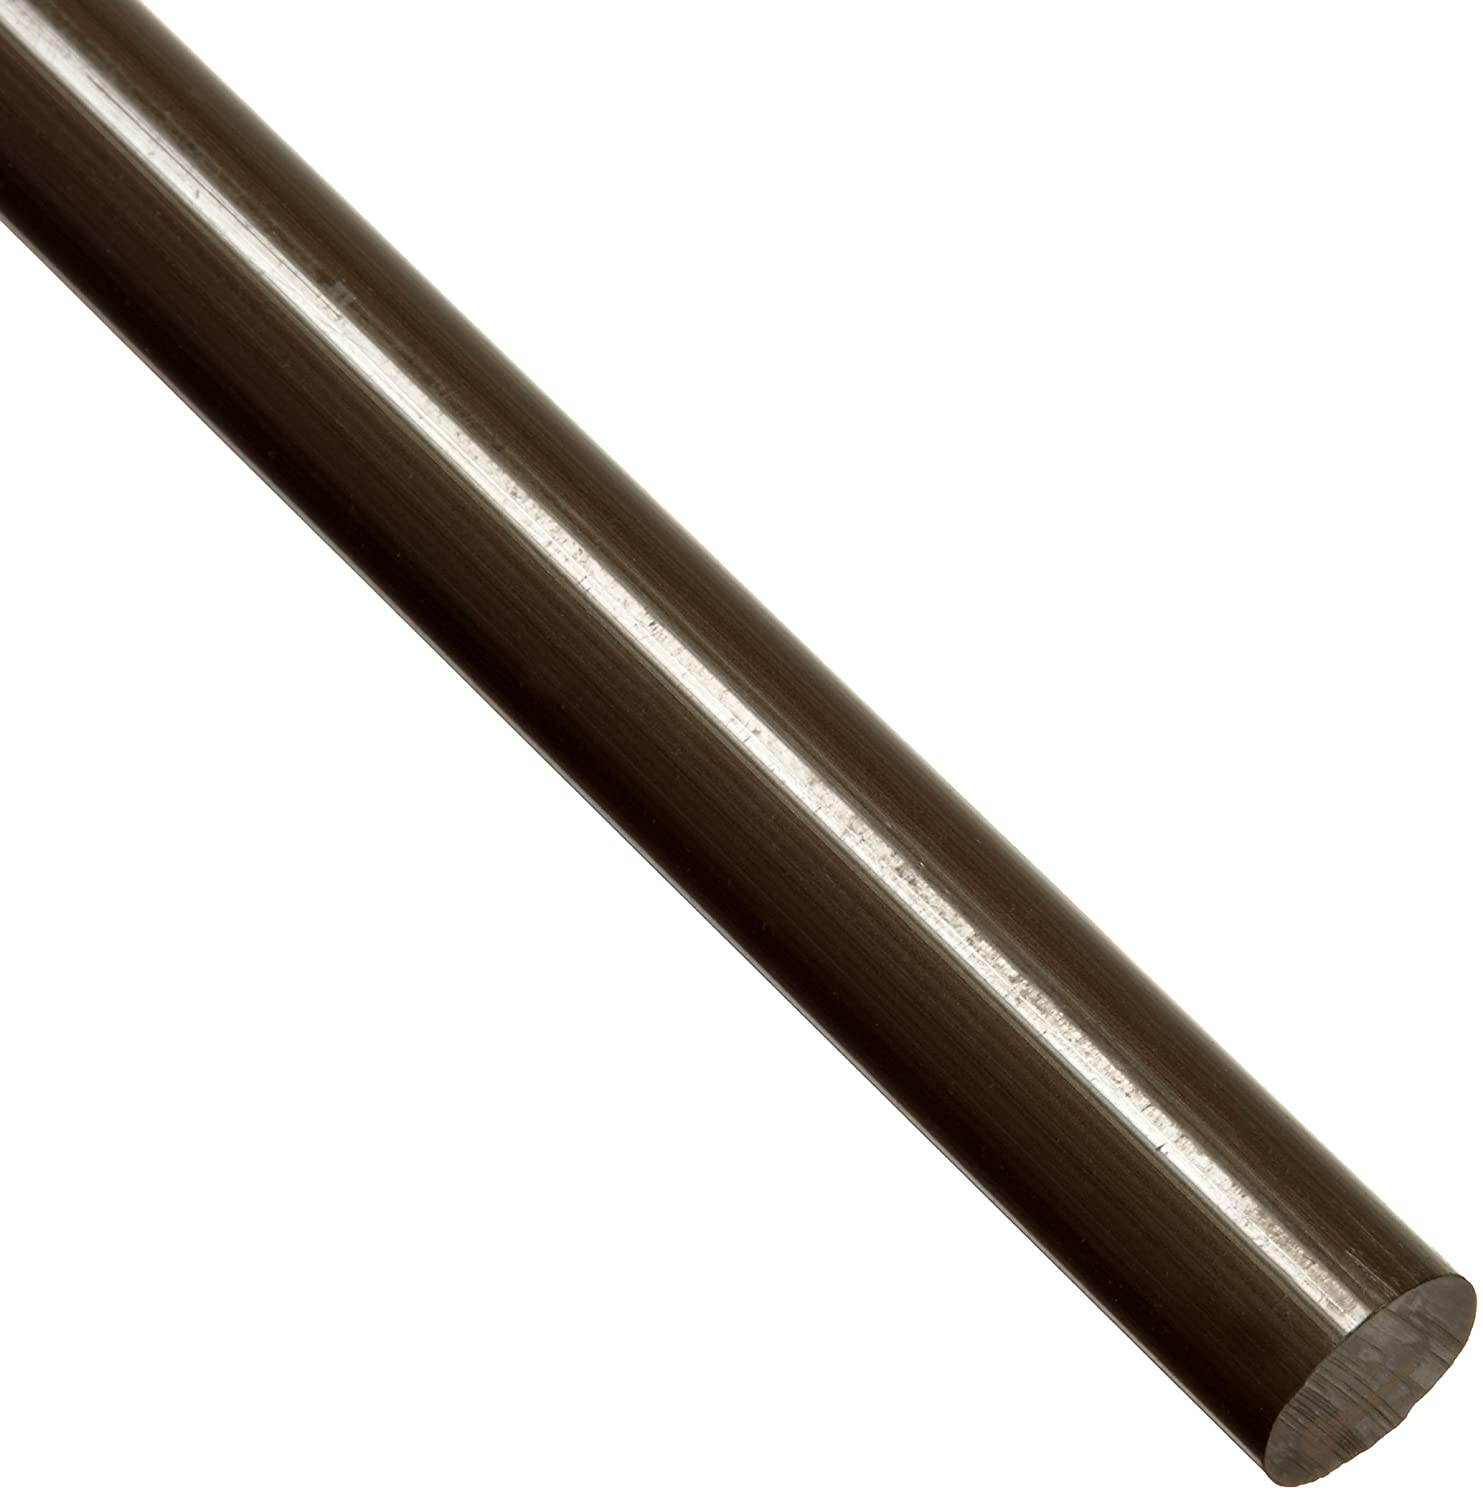 5.00 x 6.00 x 0.250 Thick SYMMCO SP-5-6x4 Plate Stock 841 Sintered Bronze Oil Impregnated